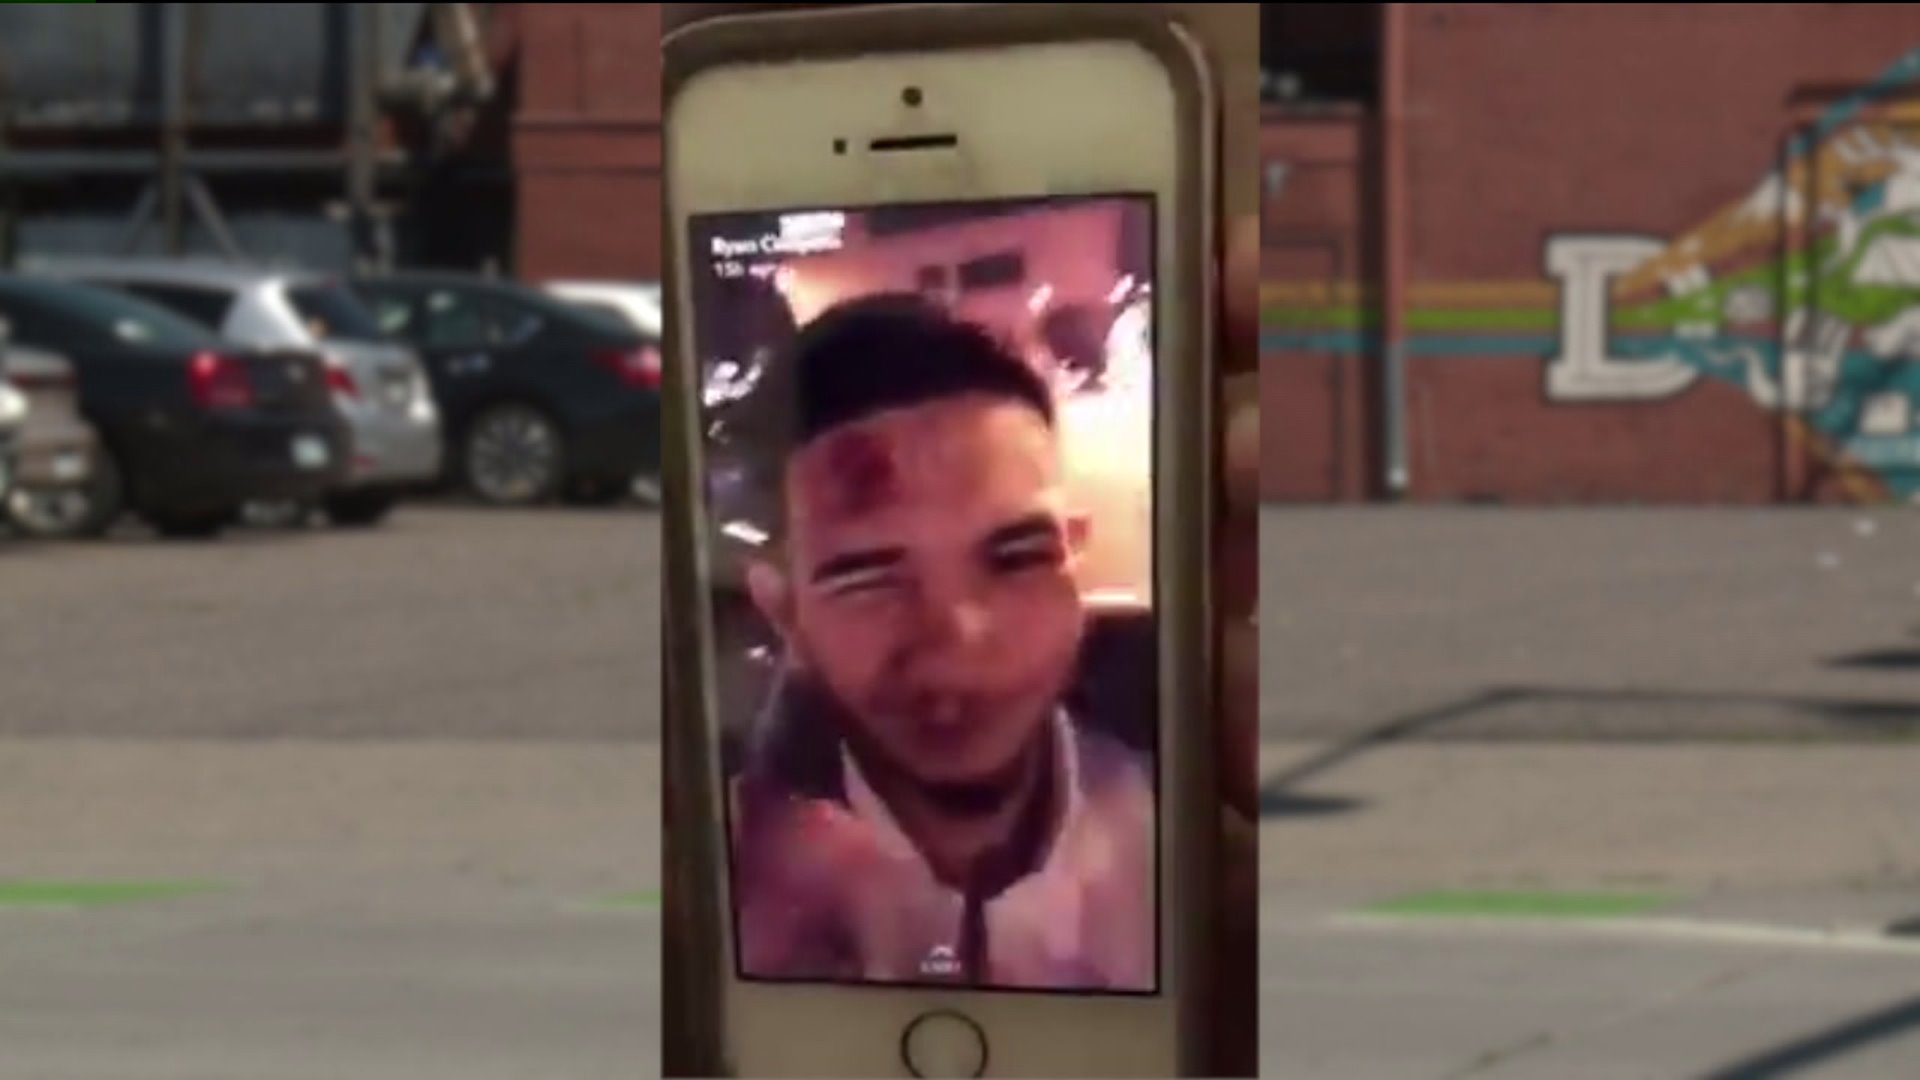 Mugging Suspects Post Snapchat Story on Victim's Phone